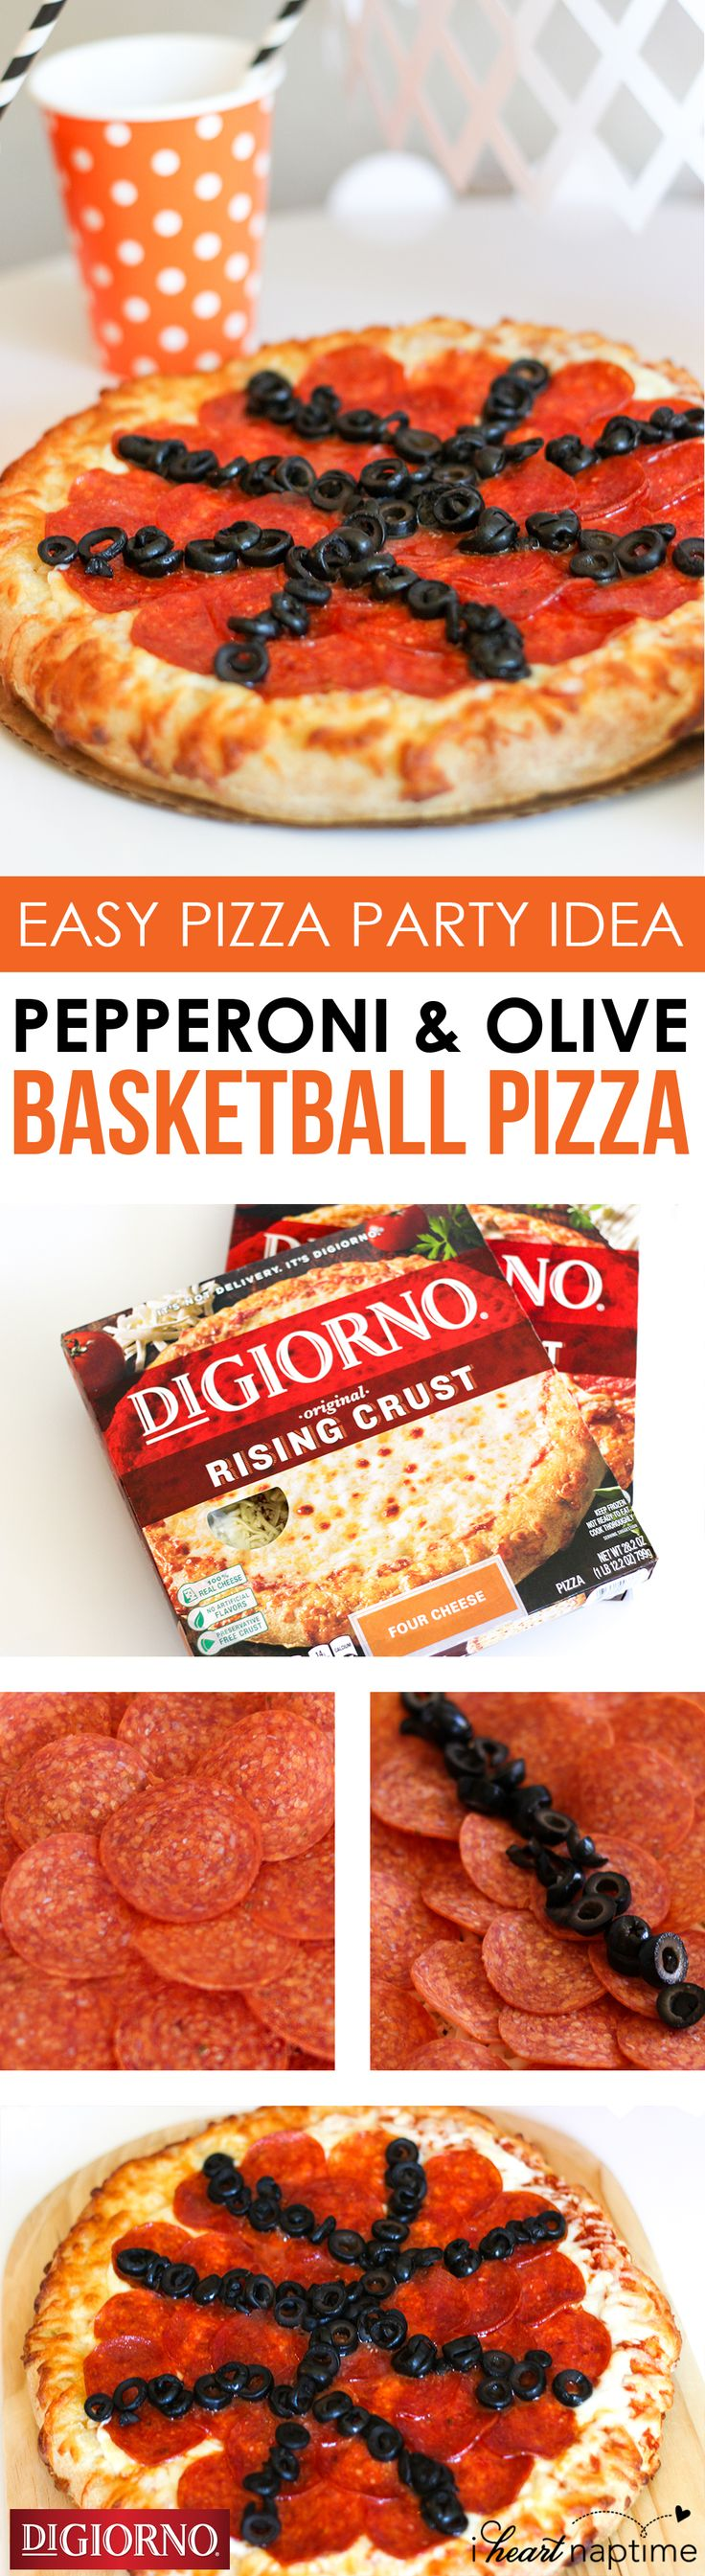 Inspiration for your basketball watch party from @iheartnaptime! Supplies: DIGIORNO Original Rising Crust Four Cheese pizza, Olives and Pepperoni slices. Step 1: Start with DIGIORNO Original Rising Crust Four Cheese pizza as the base of the basketball pizza. Step 2: Top the pizza in its entirety with pepperoni. Step 3: Add olives to the pizza to resemble the black stripes on a basketball. Step 4: Bake the pizza for about 20 minutes, serve and enjoy!